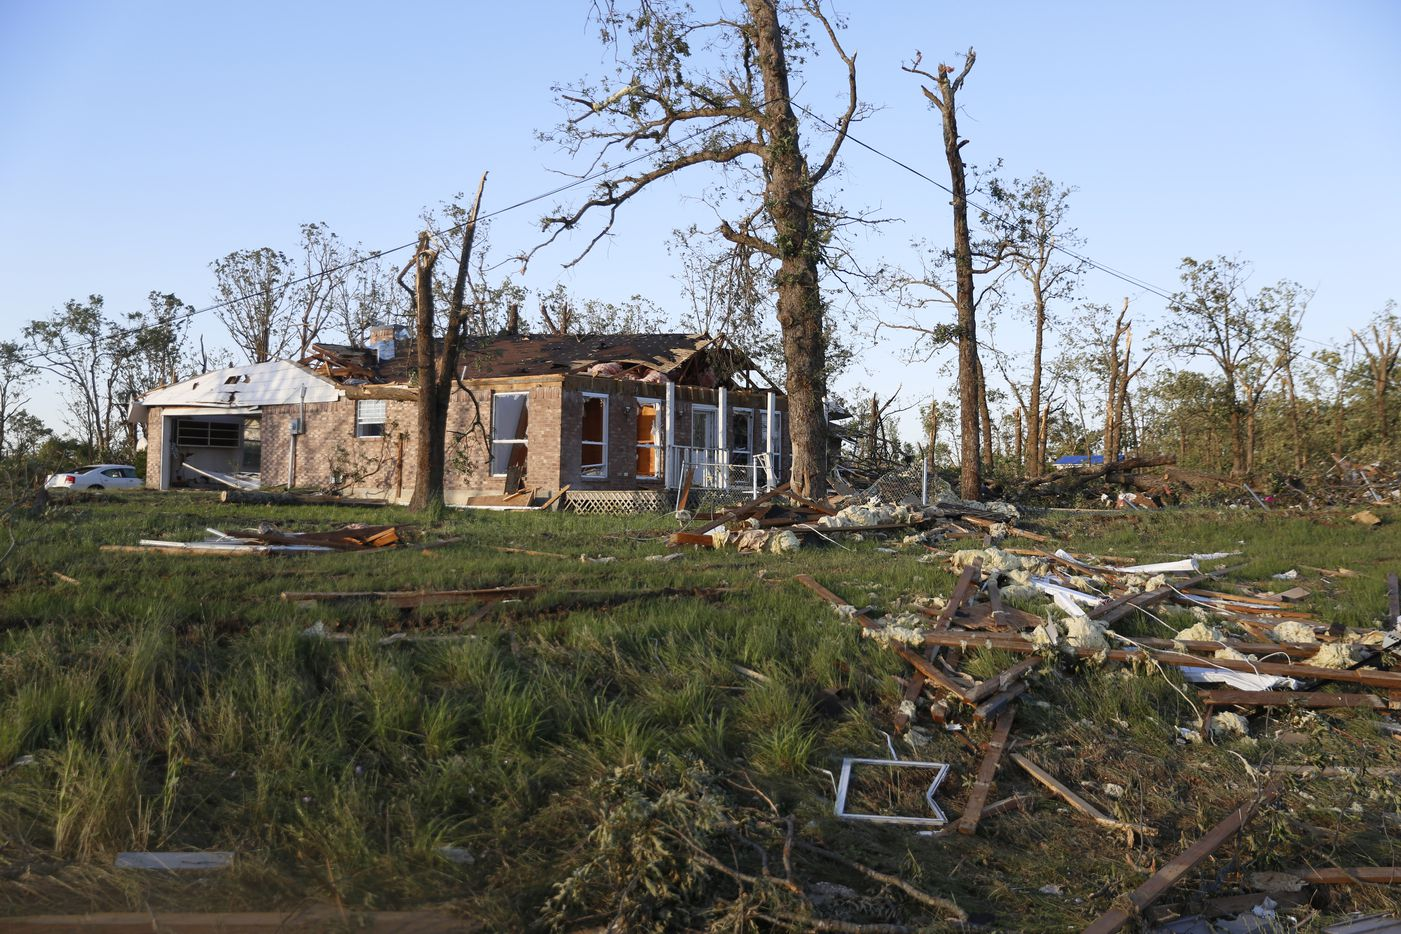 One of the houses off Highway 69 in Emory in the aftermath of a tornado, photographed on Sunday April 30, 2017. Several houses in the neighborhood were hit by a tornado Saturday April, 29, 2017. According to authorities working the scene, no one was injured.